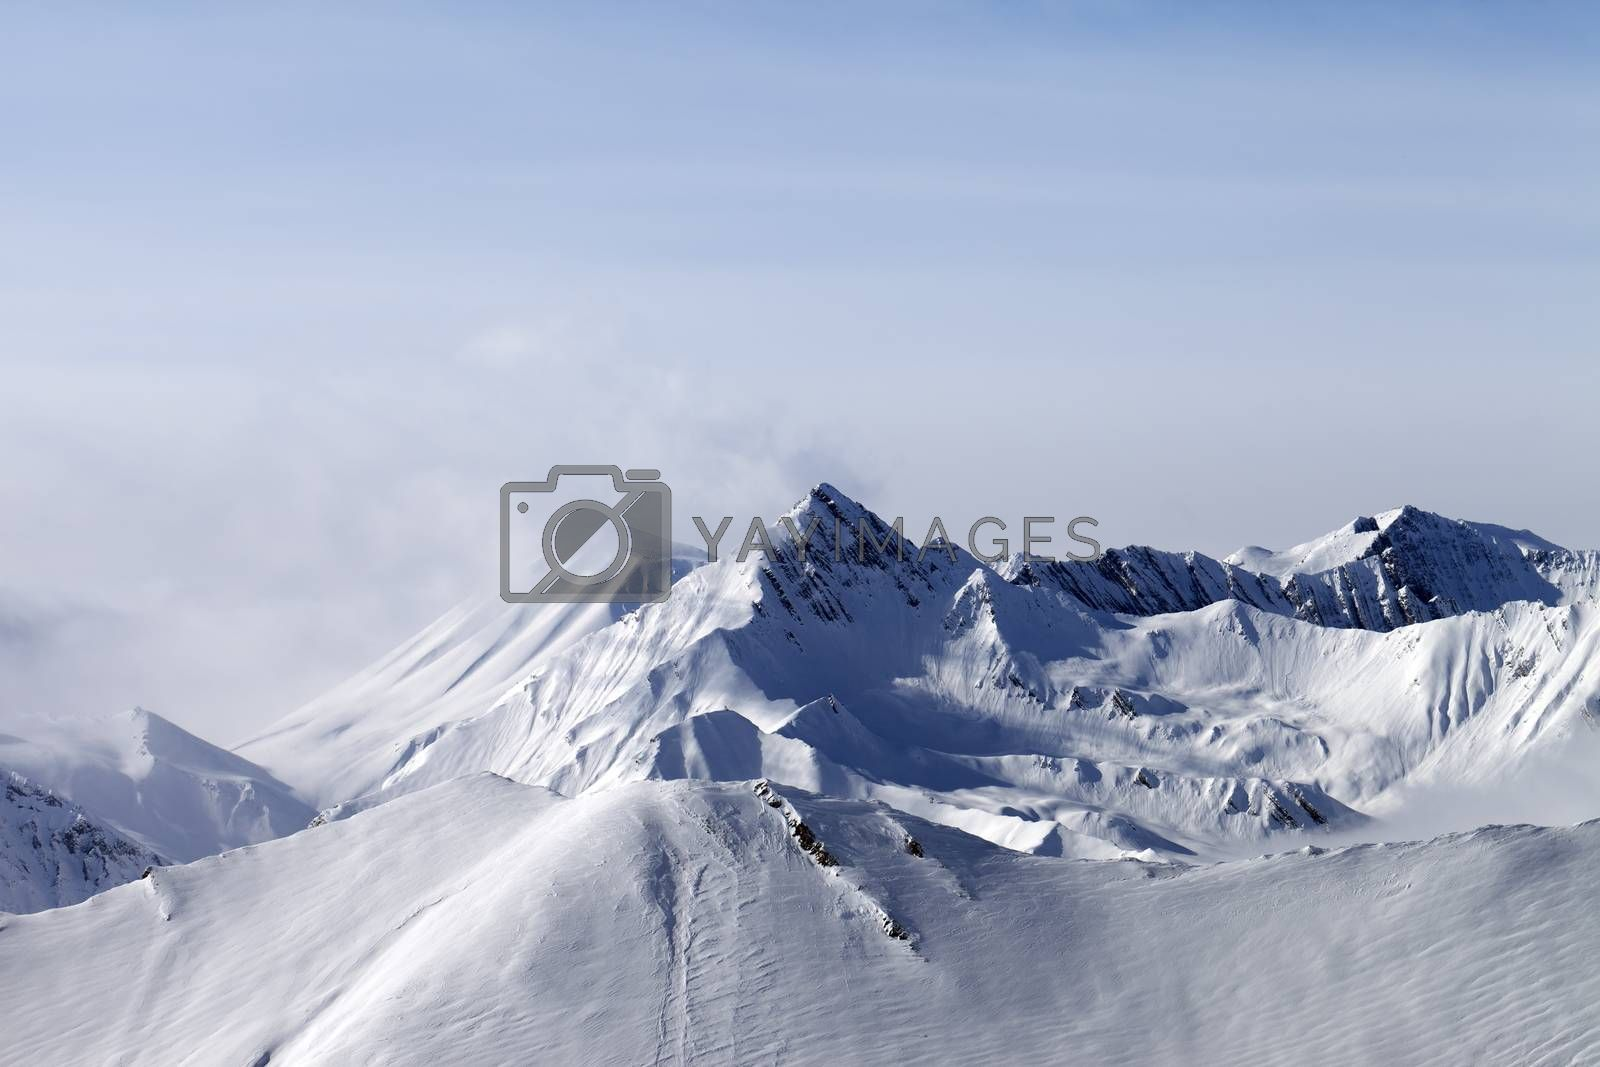 Mountain covered in white snow.